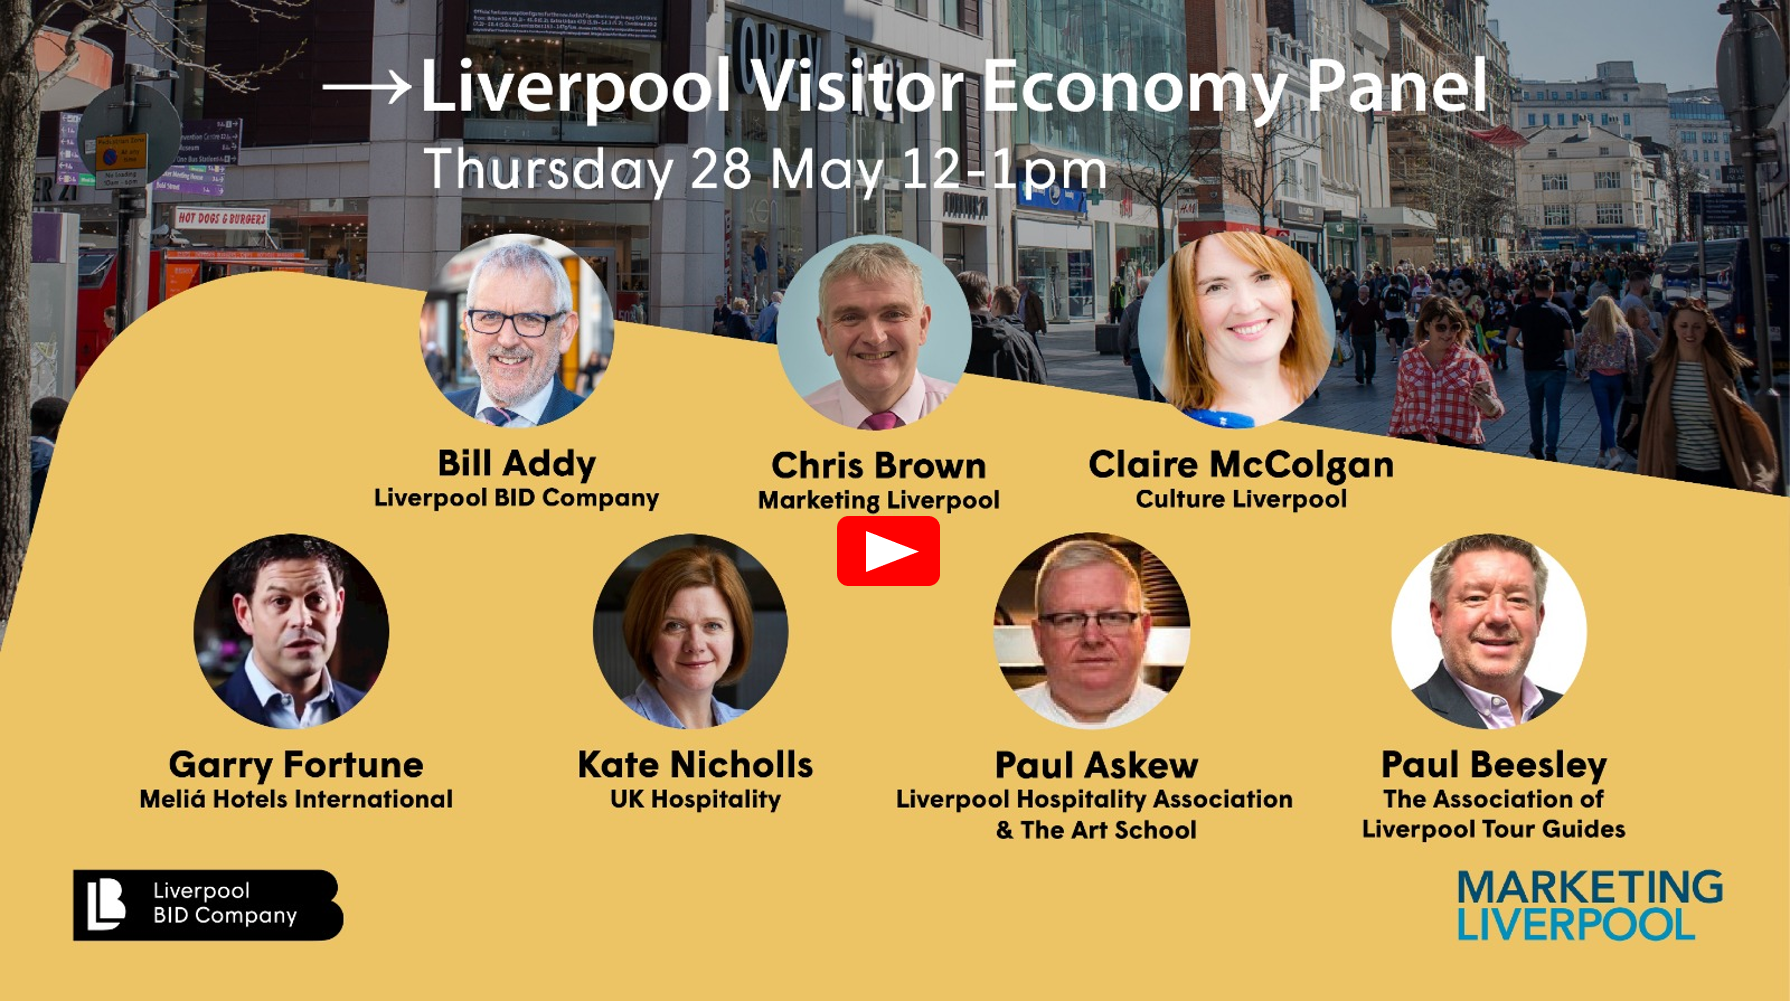 Watch the Liverpool Visitor Economy Panel from 28 May